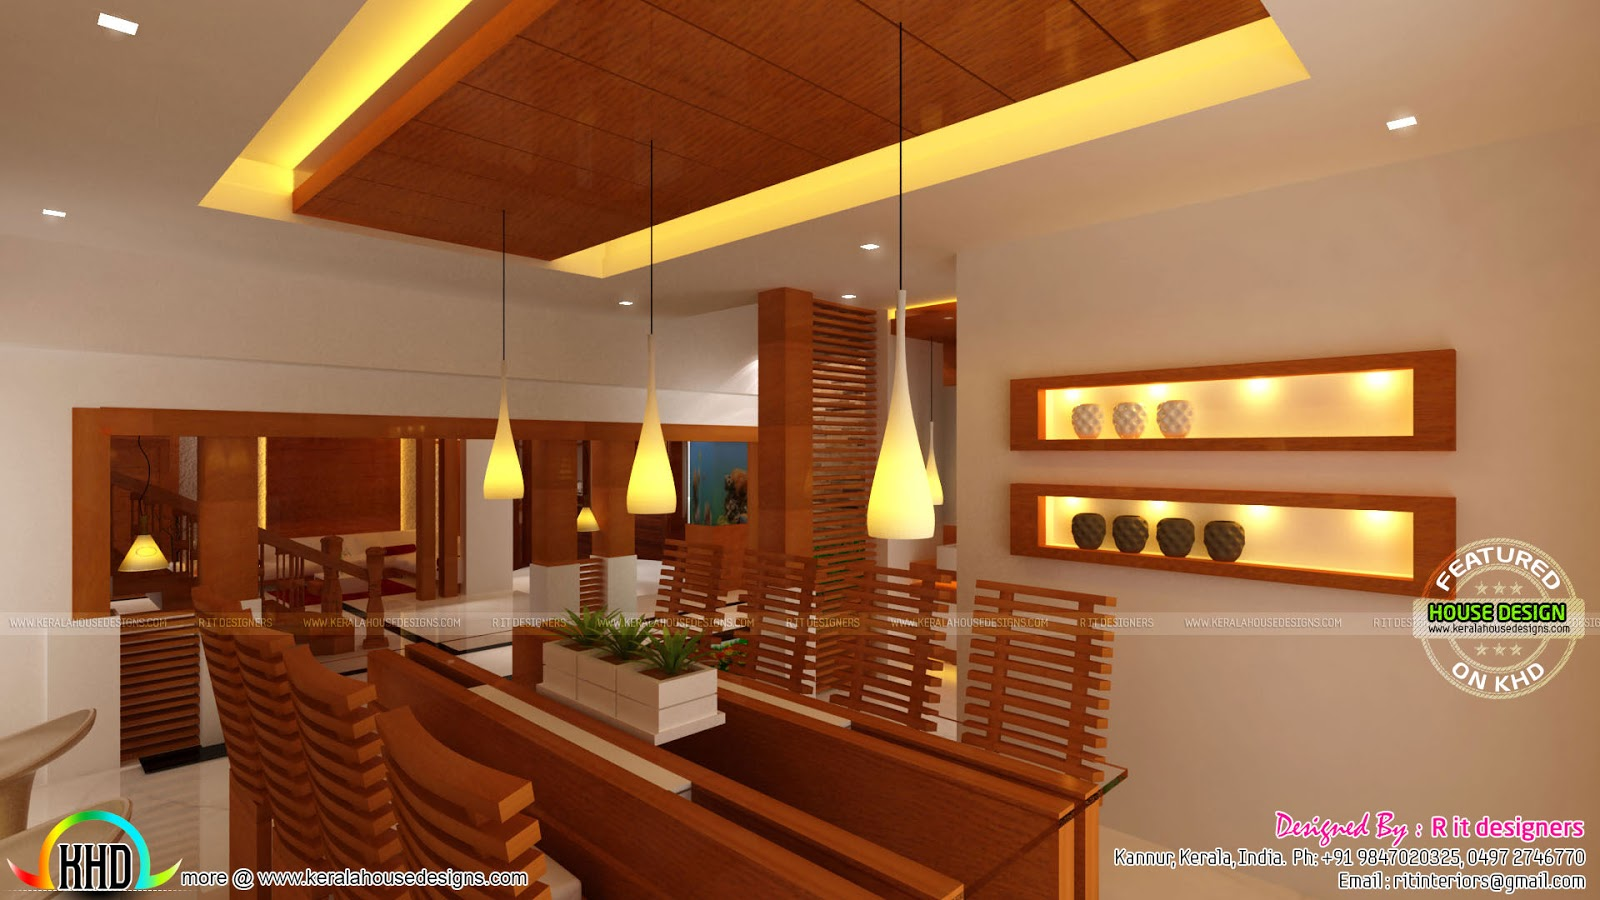 Wooden finish interior designs kerala home design and floor plans - Home design inside ...